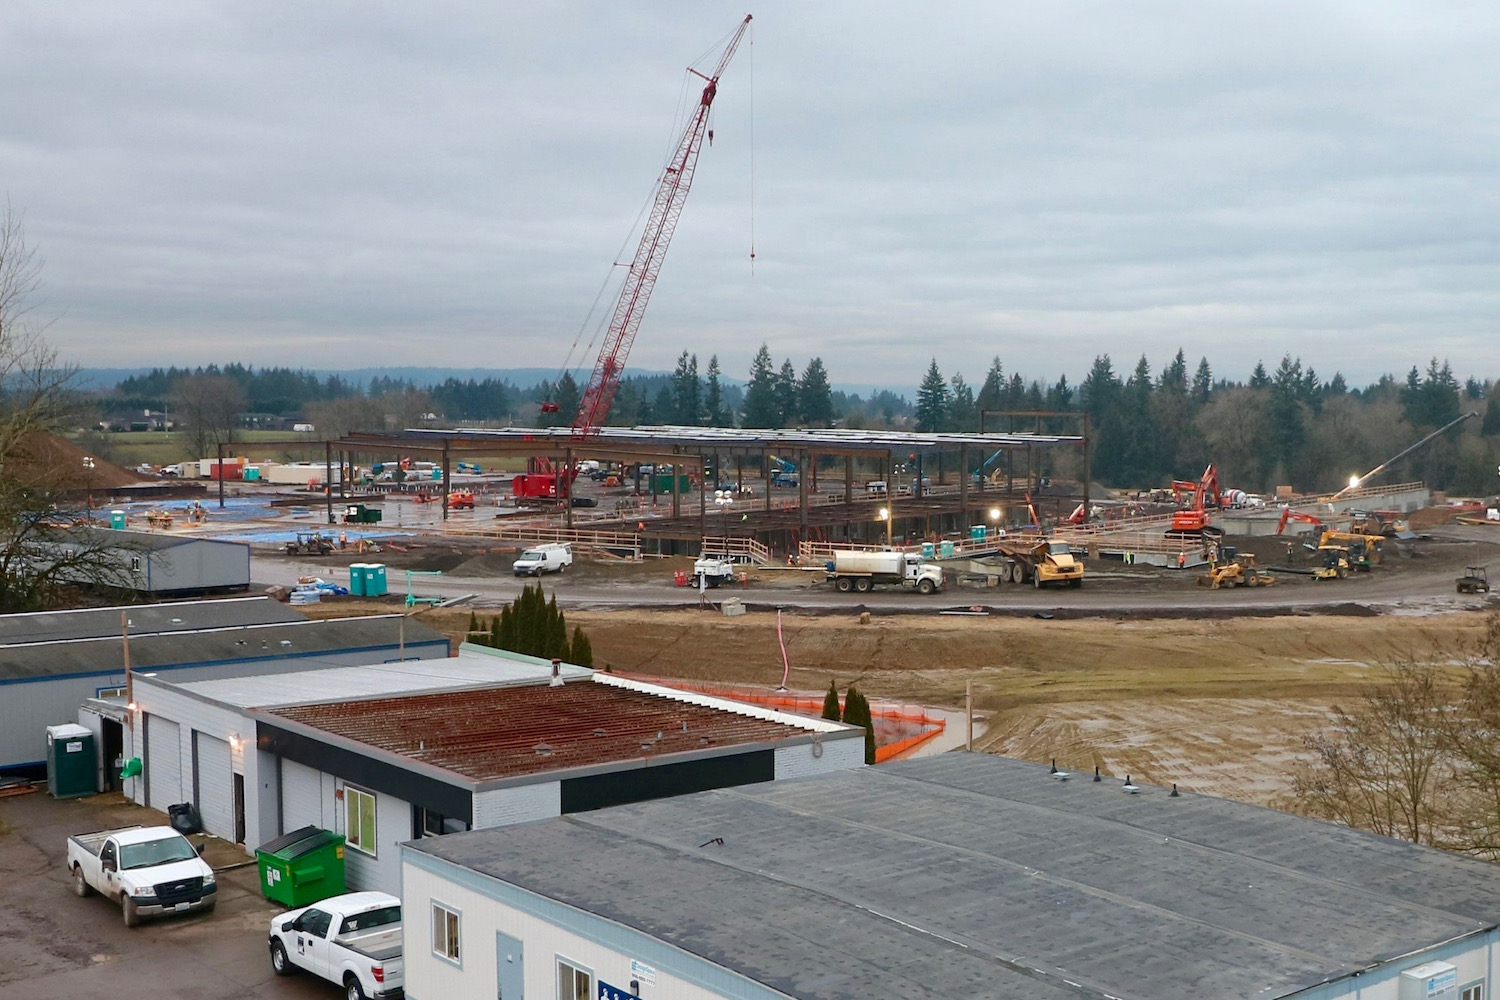 Cowlitz Tribe plans to debut long-awaited casino in spring of 2017